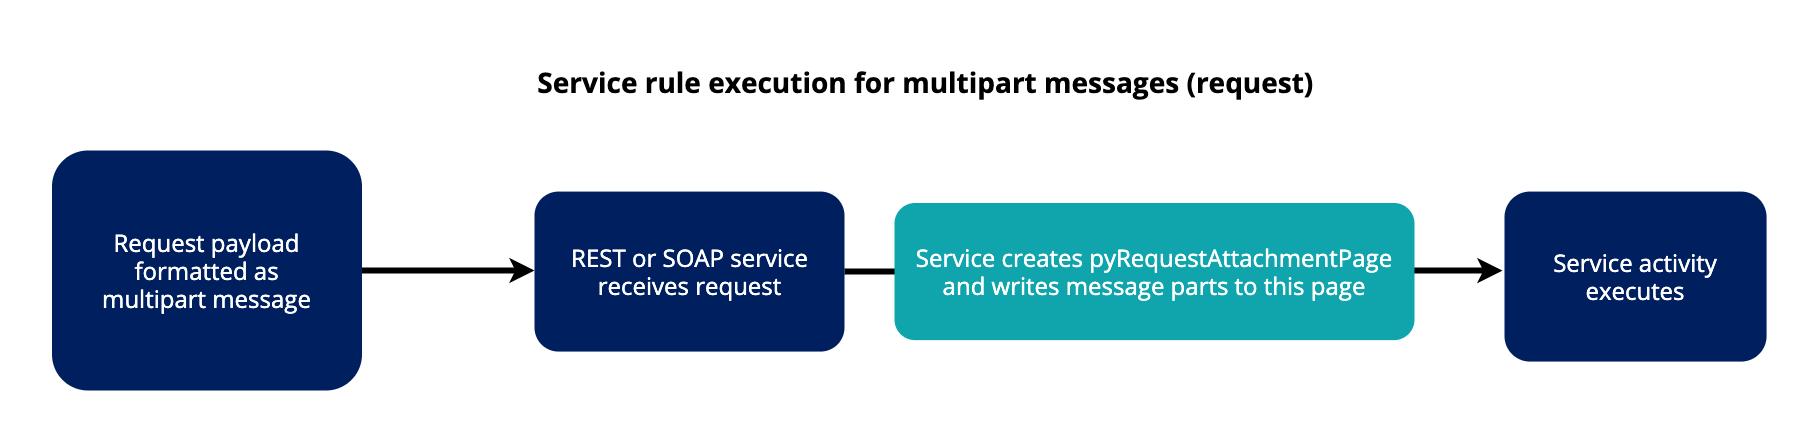 Diagram of service rule execution for multipart messages request